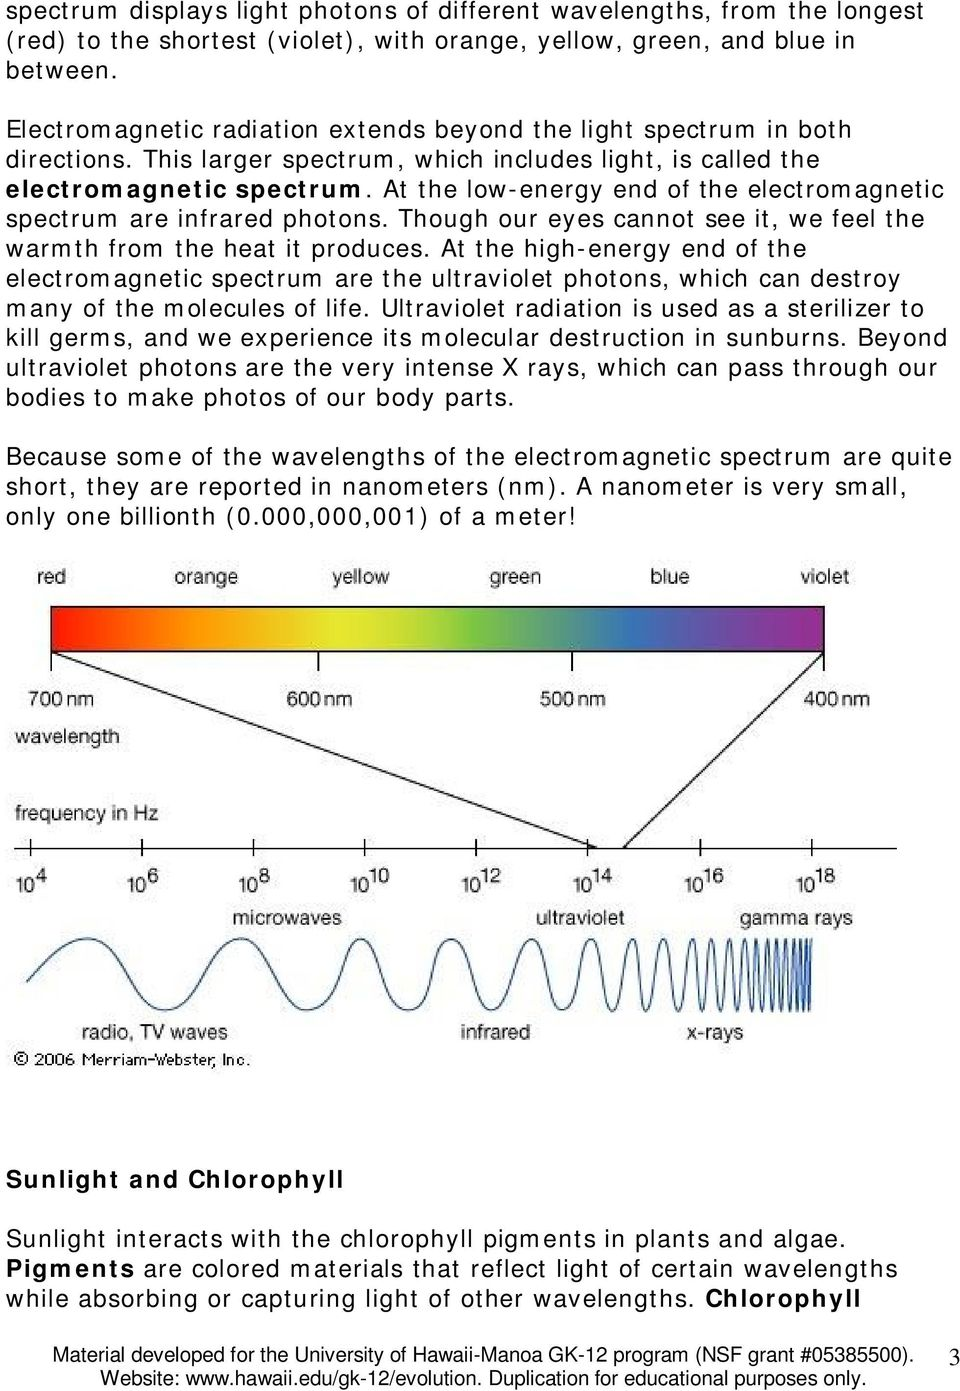 At the low-energy end of the electromagnetic spectrum are infrared photons. Though our eyes cannot see it, we feel the warmth from the heat it produces.